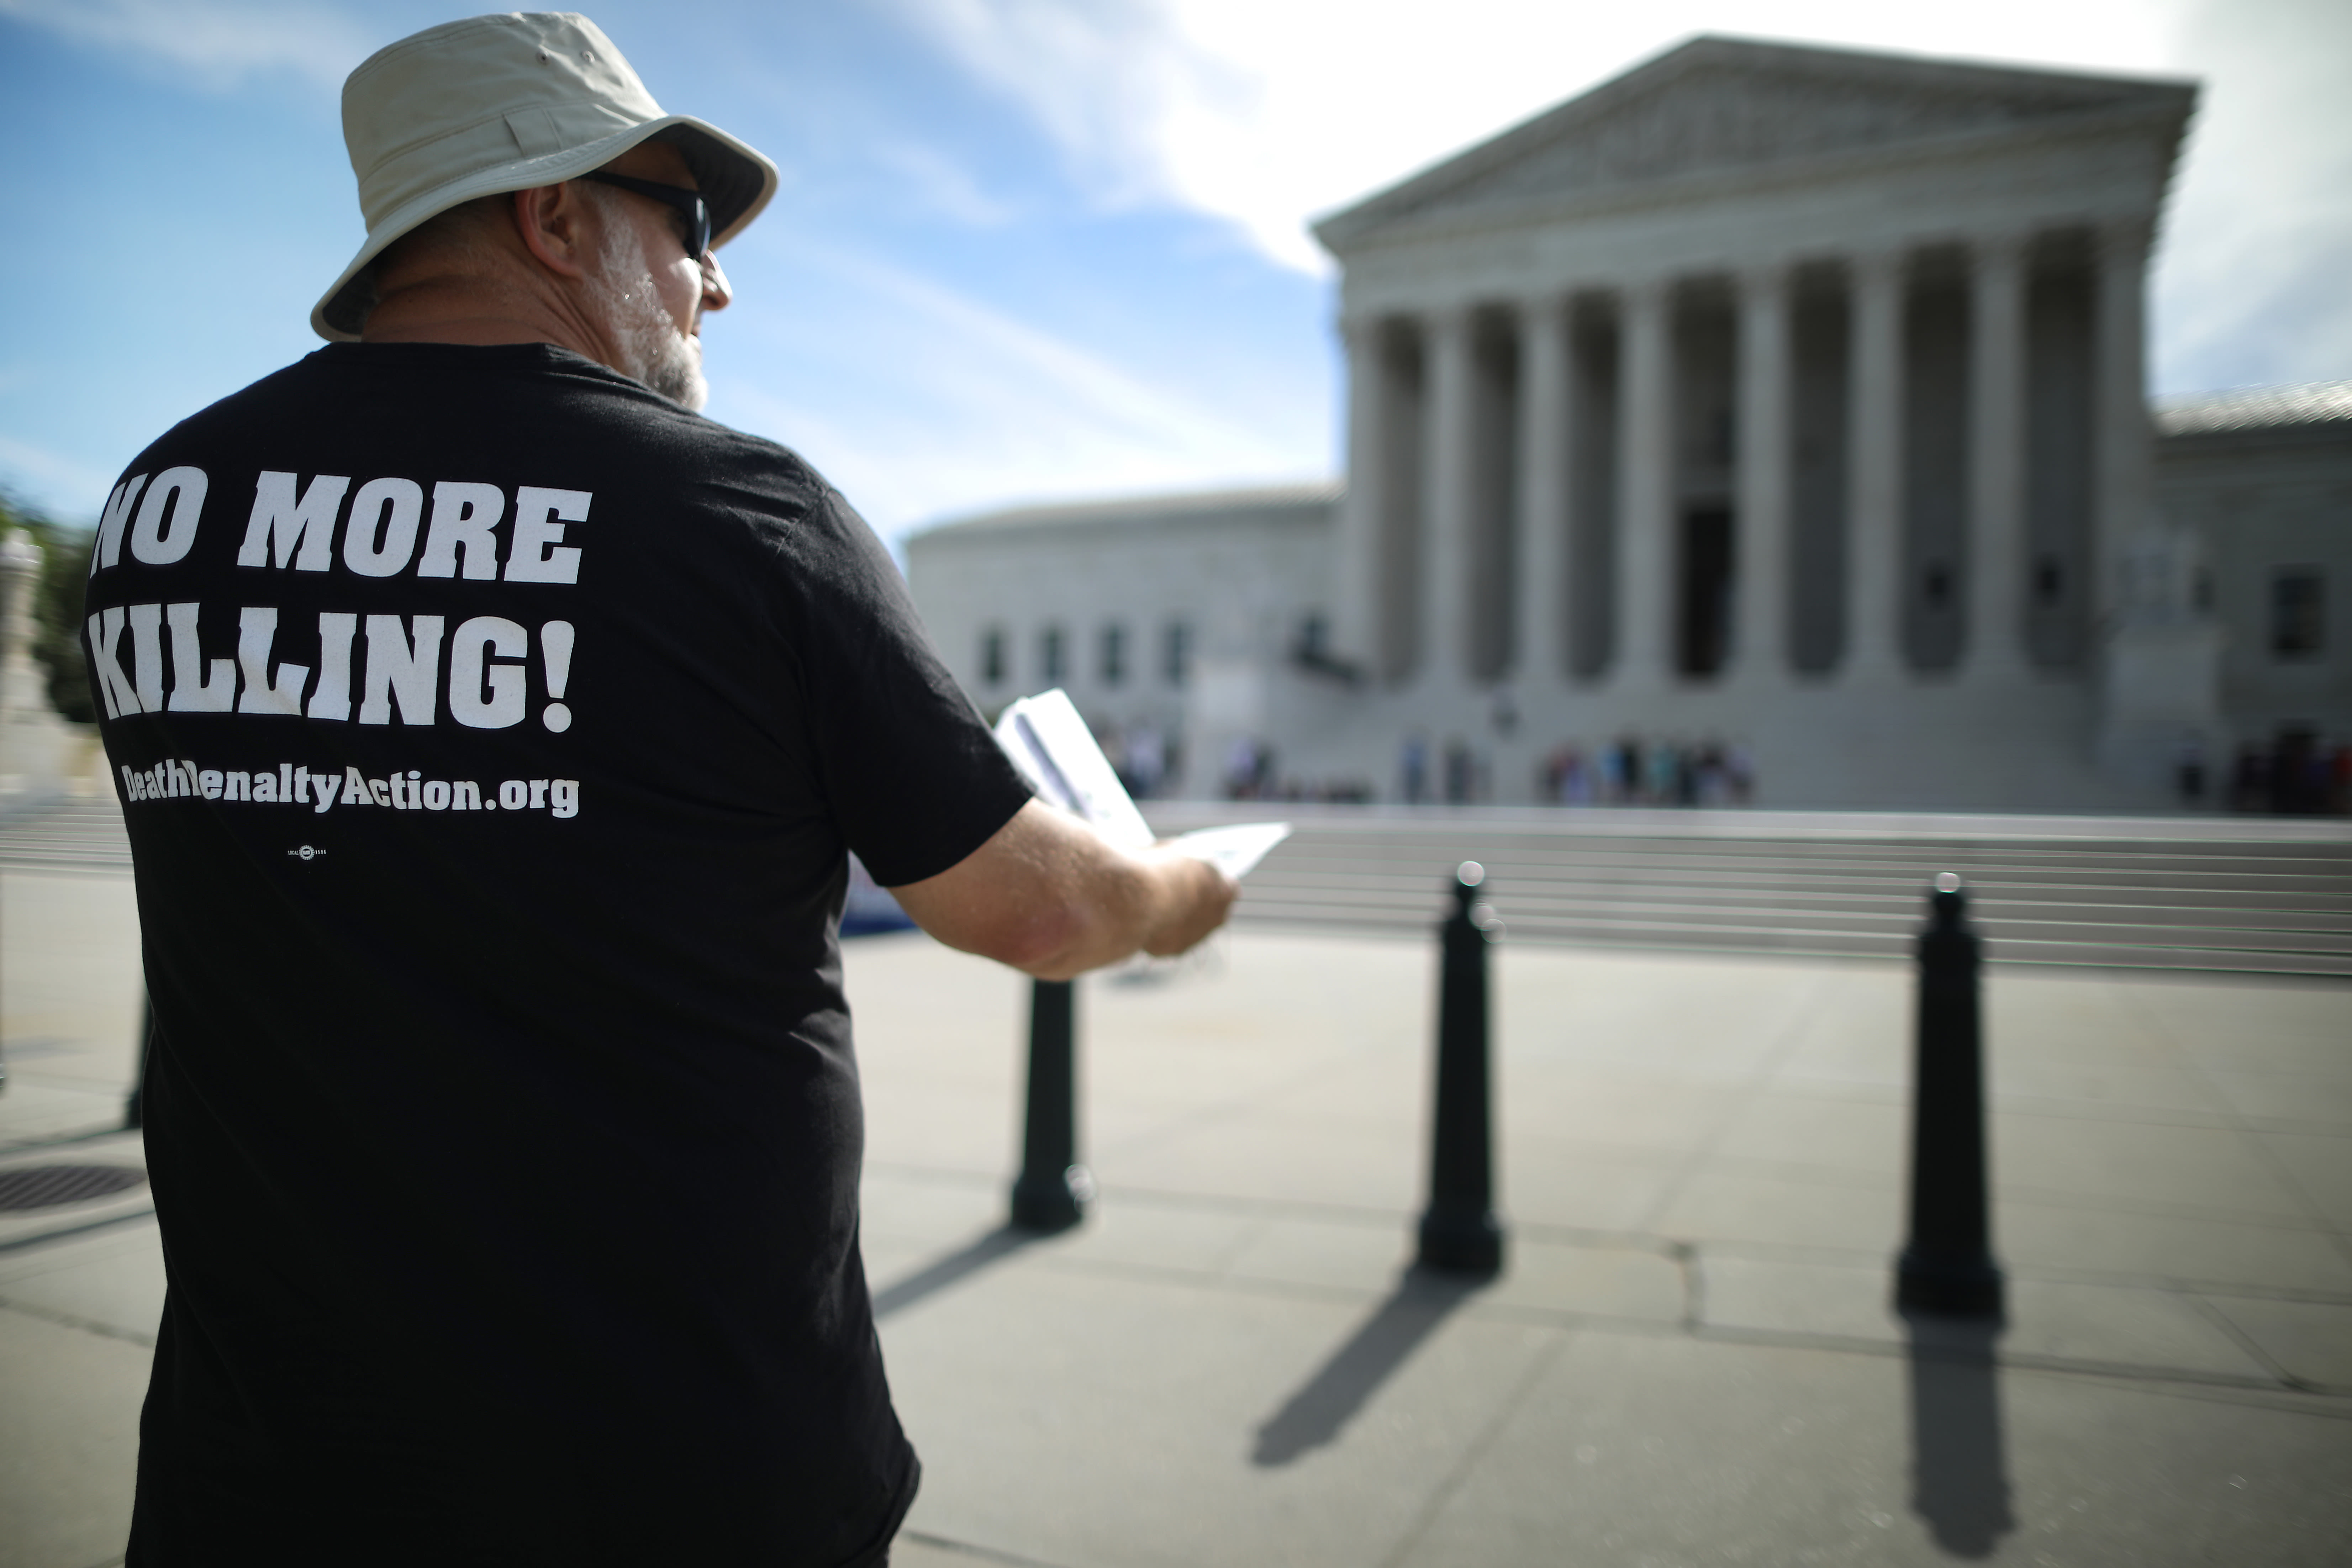 Getty Images | Chip Somodevilla  - Abraham Bonowitz of Columbus, Ohio, joins fellow members of the Abolitionist Action Committee during an annual protest and hunger strike against the death penalty outside the U.S. Supreme Court July 01, 2019 in Washington, DC.